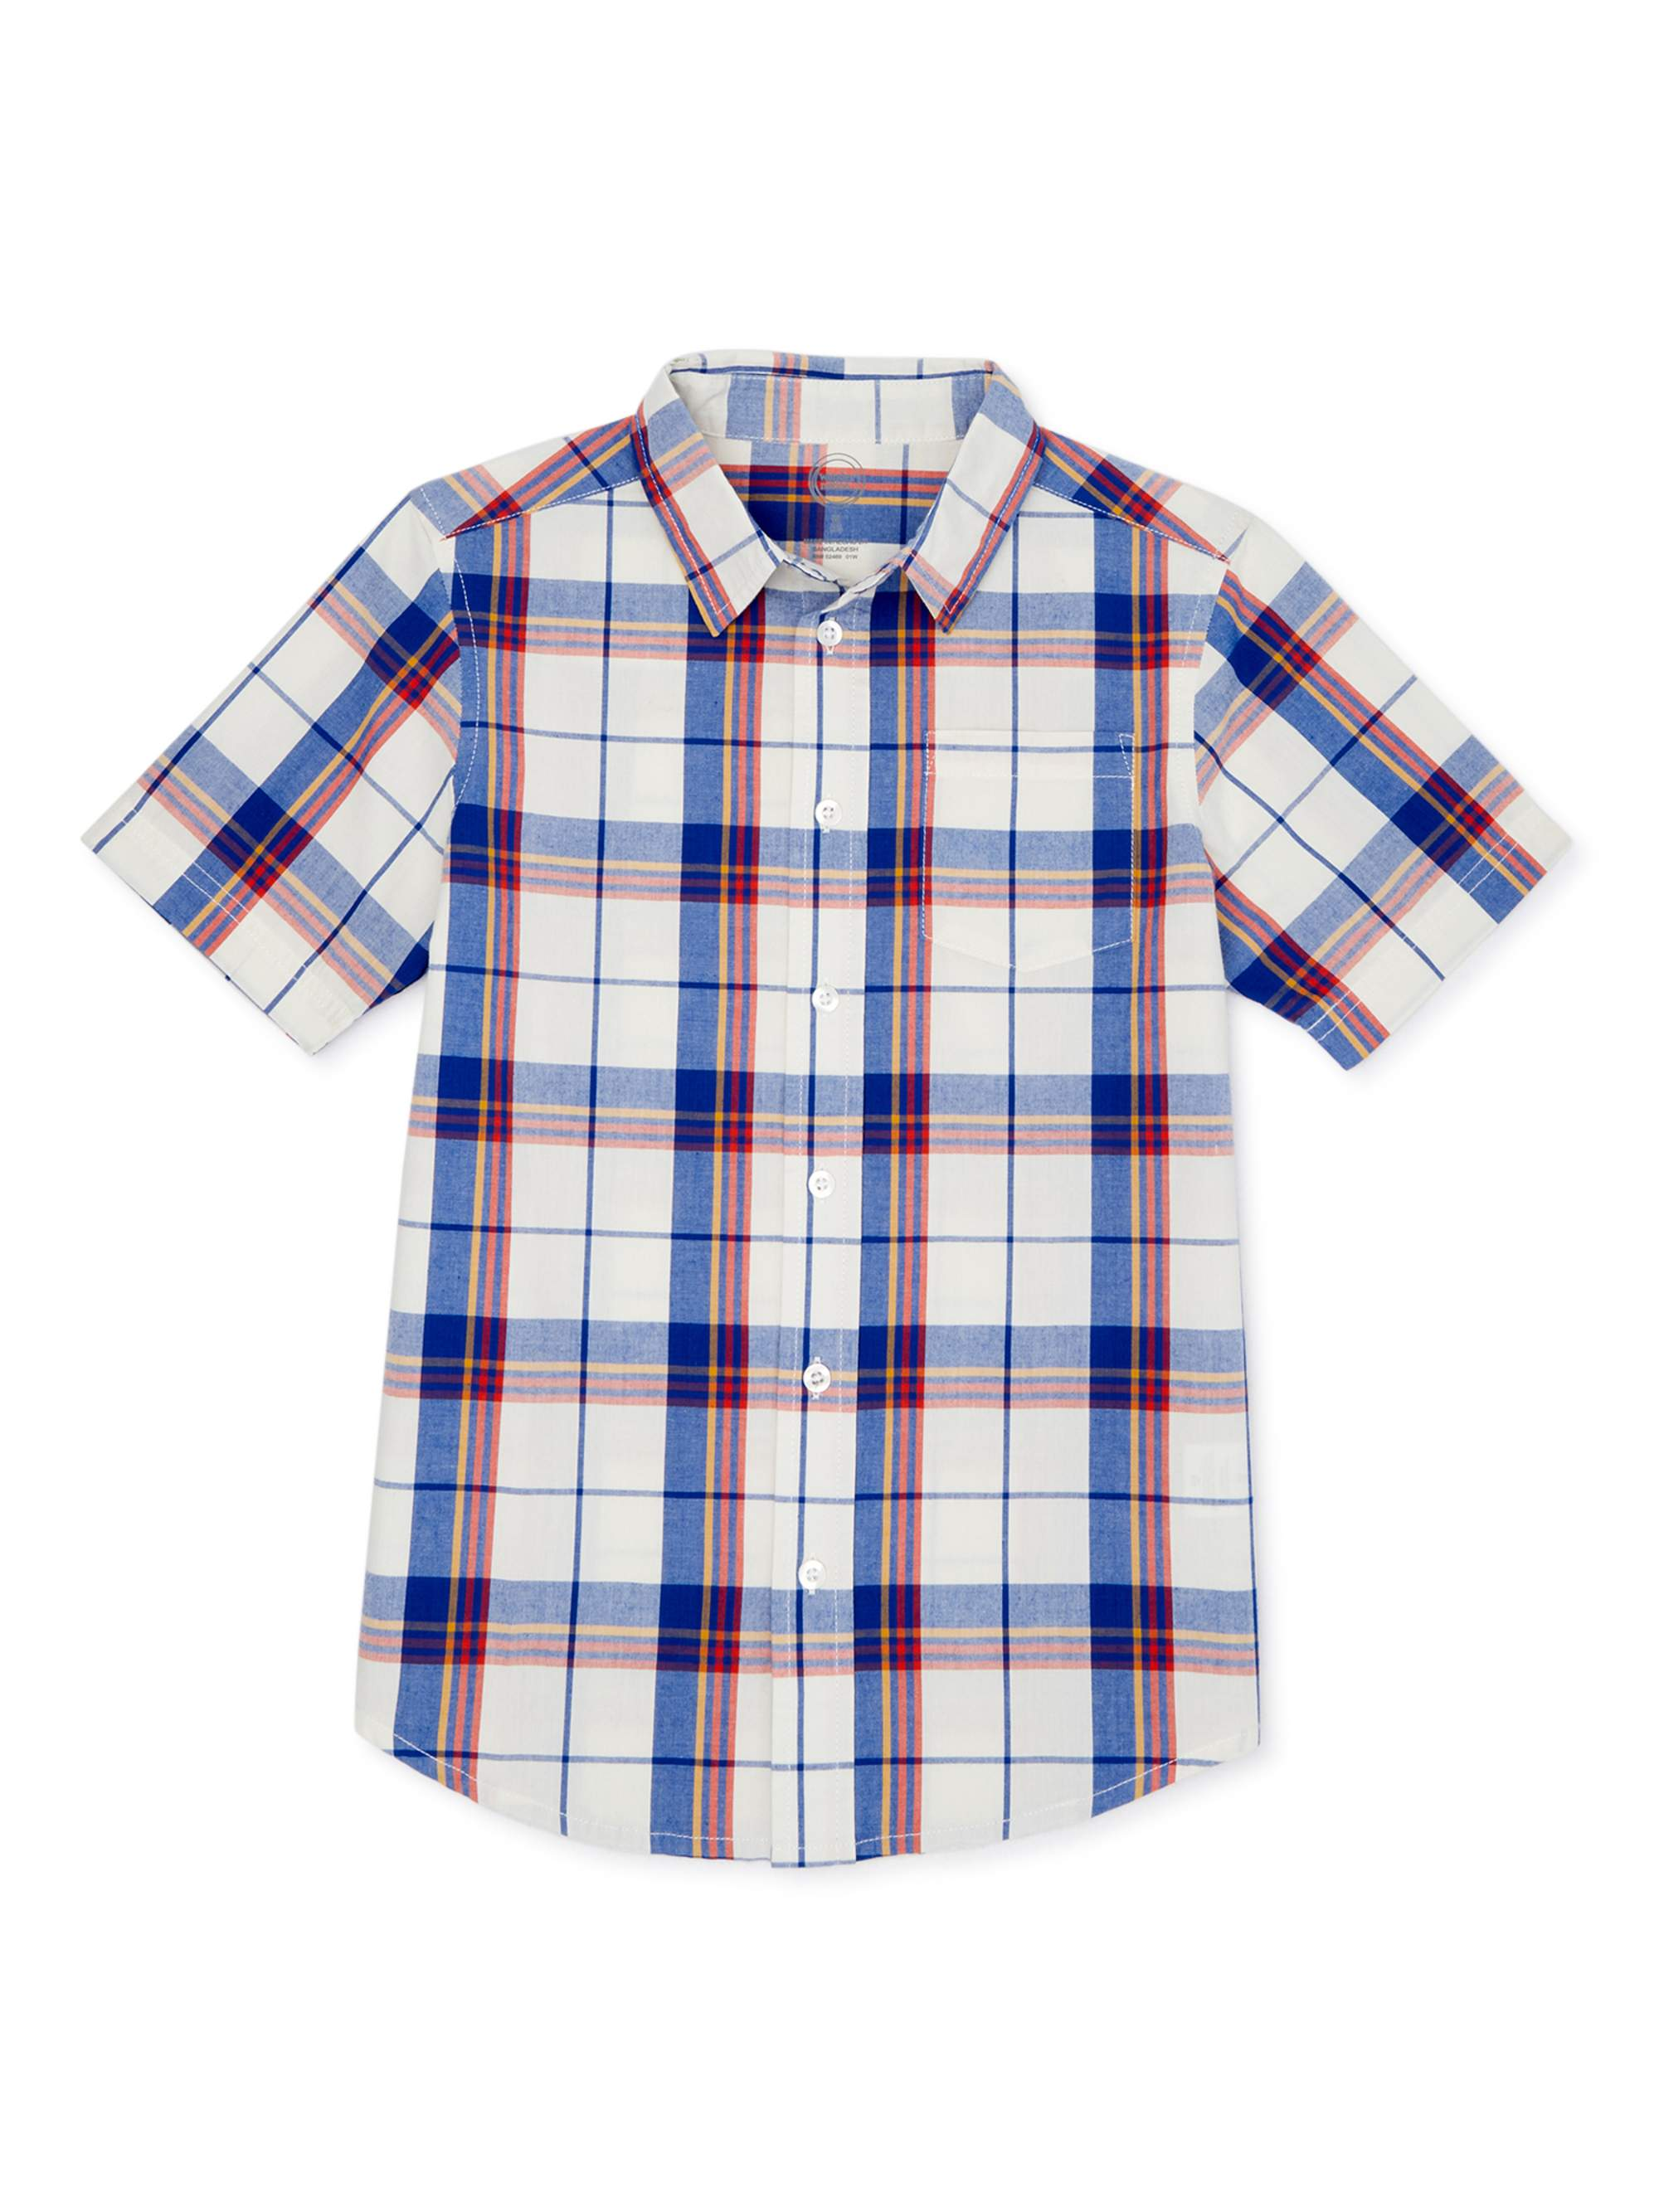 Jack Thomas Little Boys Prep Check Shirt Toddler